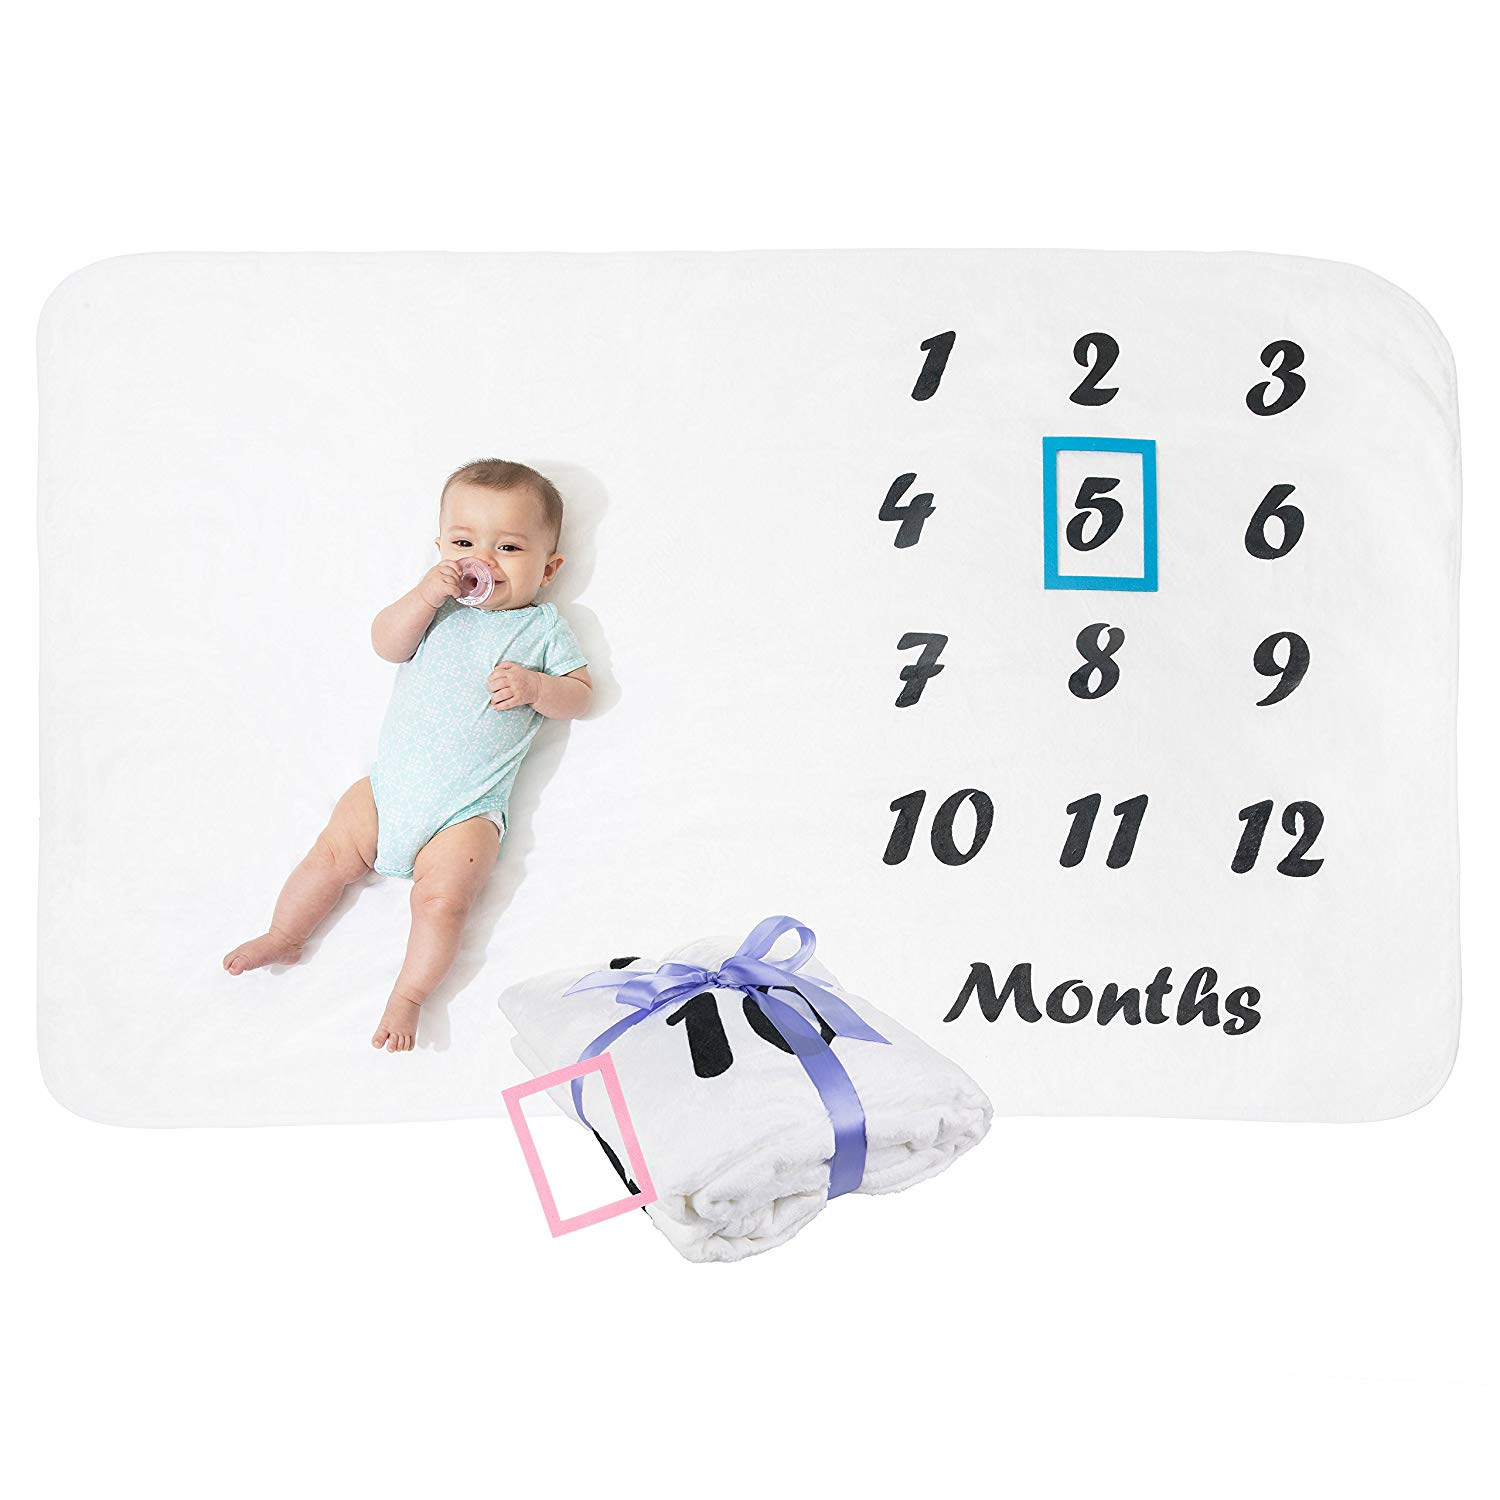 Baby Milestone Blanket for Boys and Girls: Infant Calendar Month Photography Prop Blankets - Monthly Newborn Growth Photo Blanket with 2 Picture Frame Props Included - 60 x 40 inch